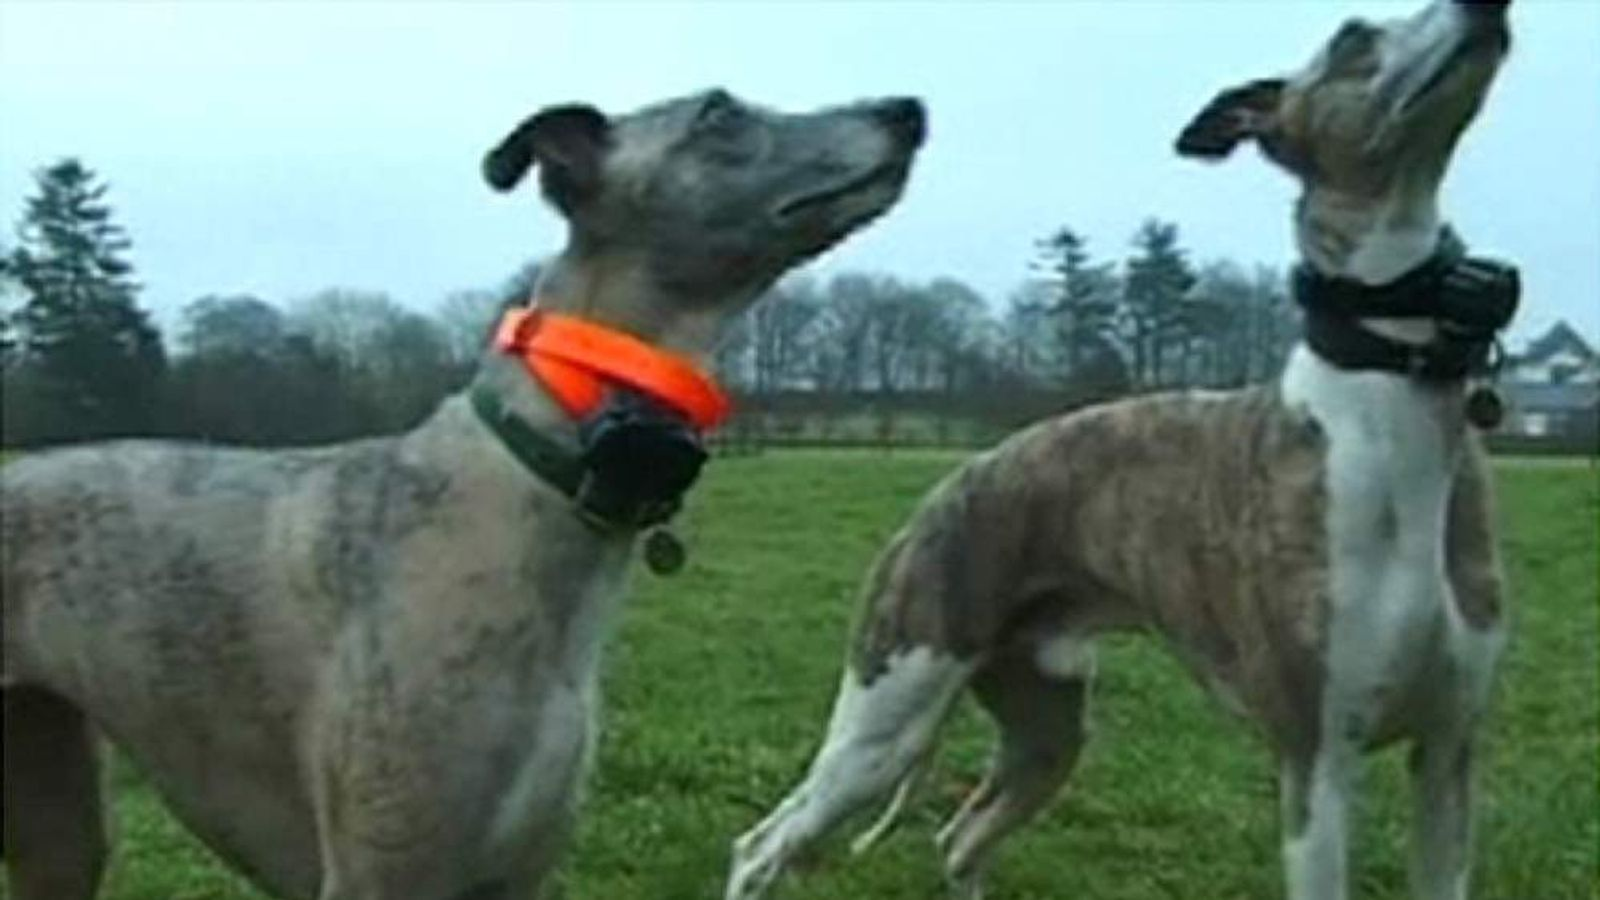 Two dogs wearing electric collars in a large field